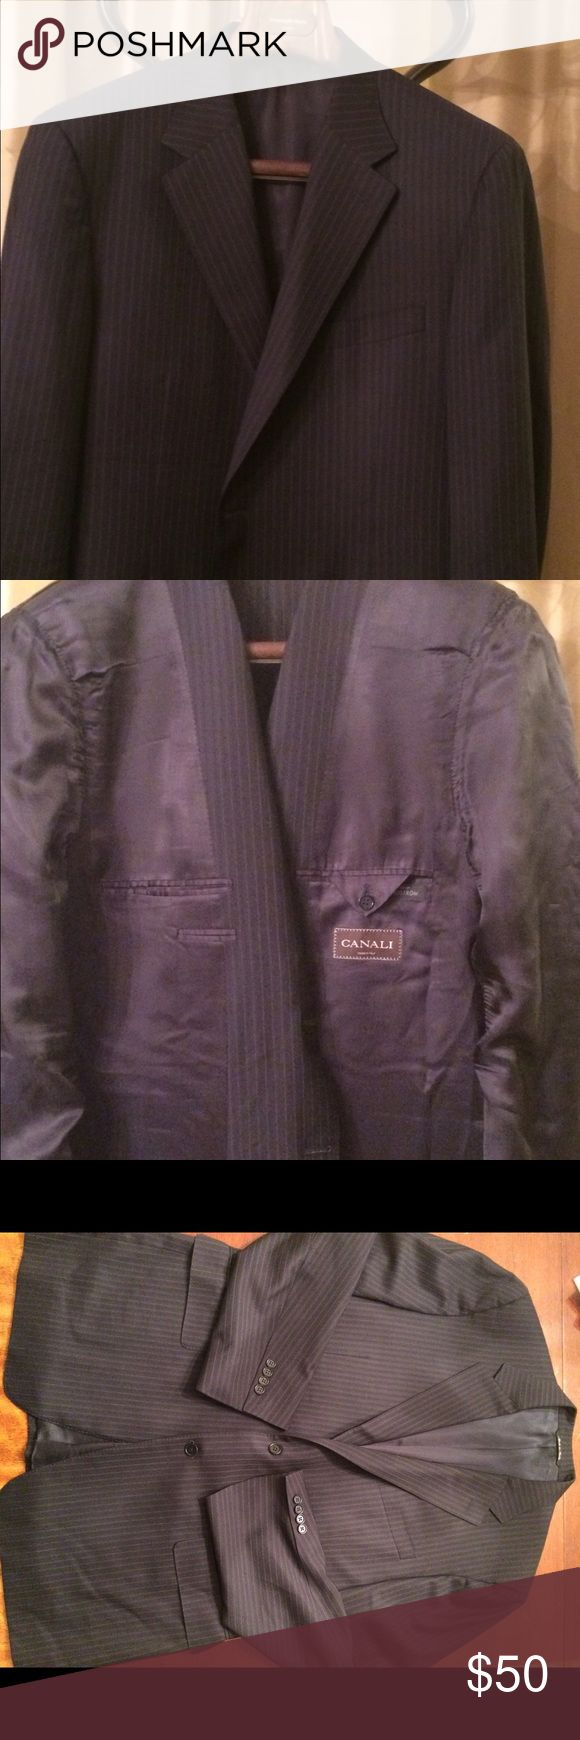 Canali Navy Pinstripe Jacket Canali for Nordstrom suit Jacket. Navy blue with silver pinstripes.  Size 58 Europe. In great shape no tears rips stains etc. more pics and info available upon request. Thanks for lookin! Canali Suits & Blazers Sport Coats & Blazers